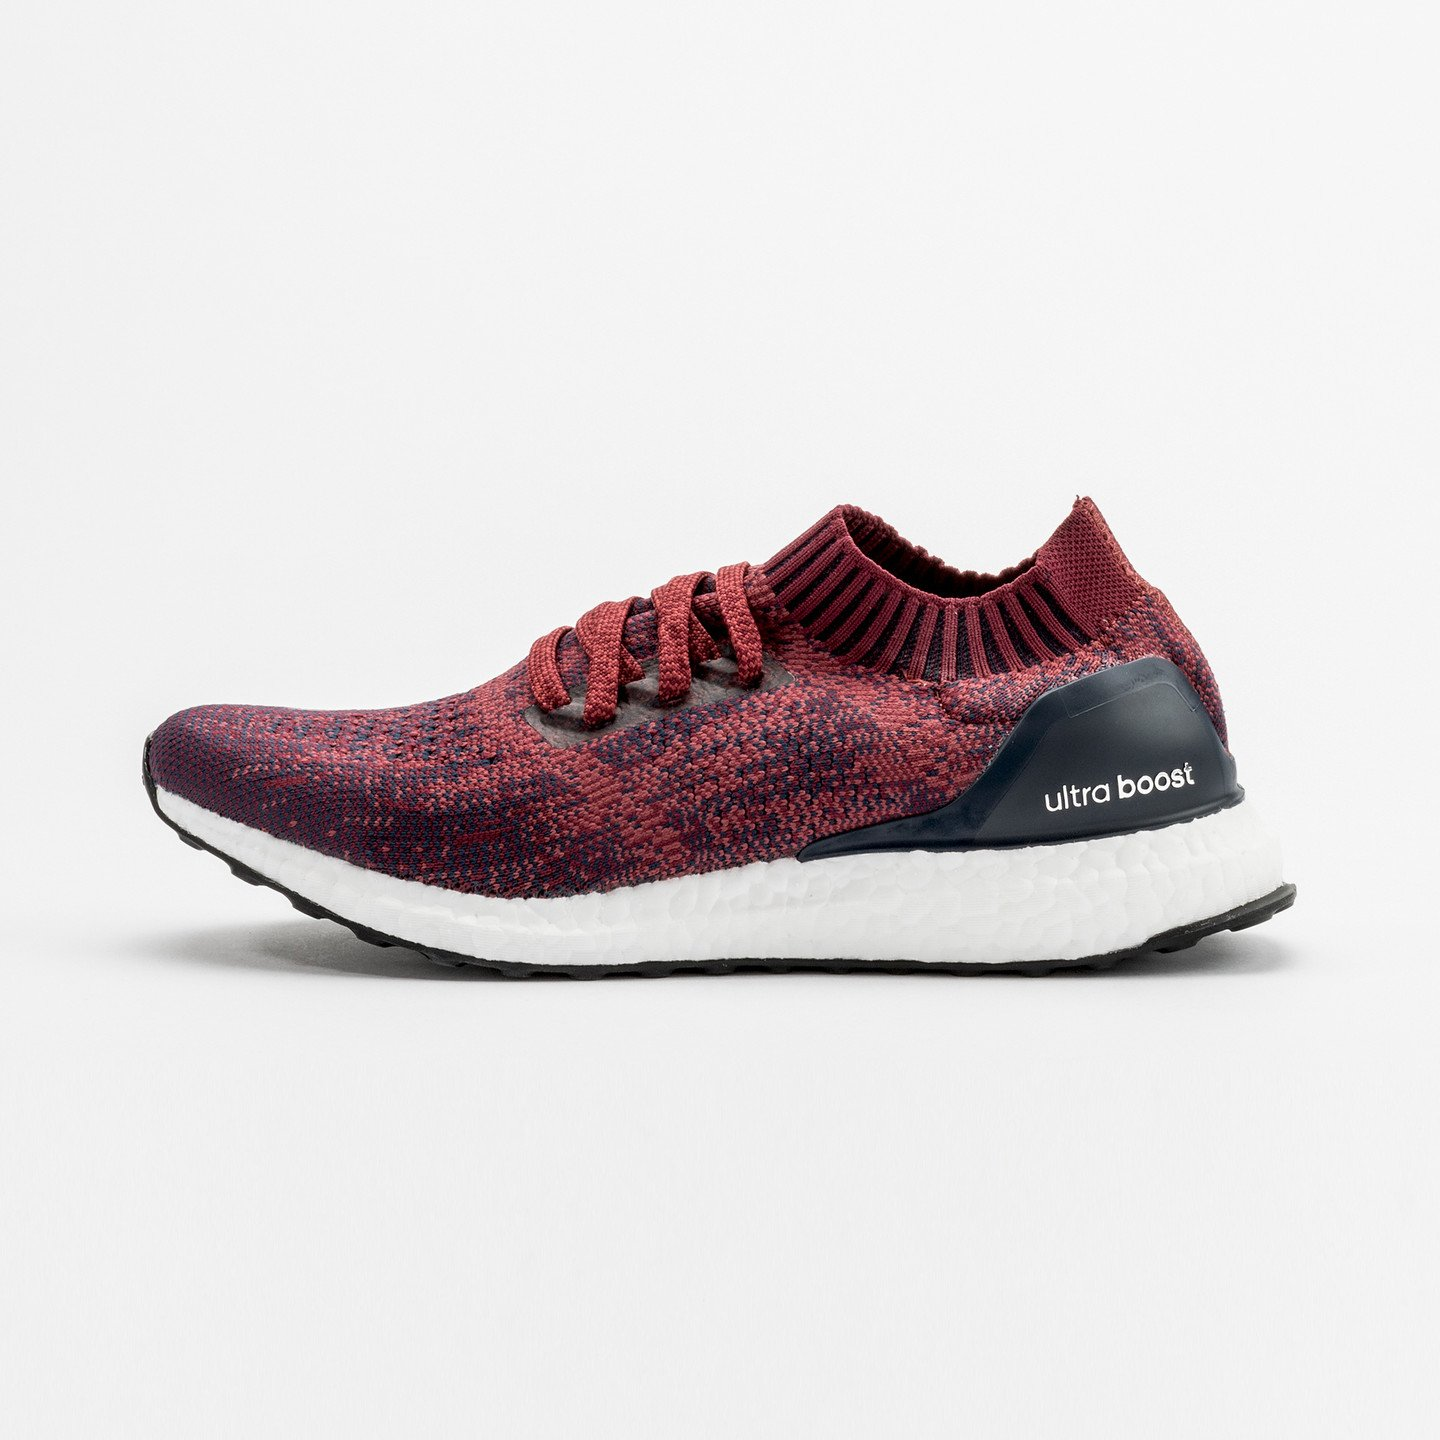 Adidas Ultra Boost Uncaged 'Burgundy' Mystery Red / Coll. Burgundy / Coll. Navy BA9617-46.66